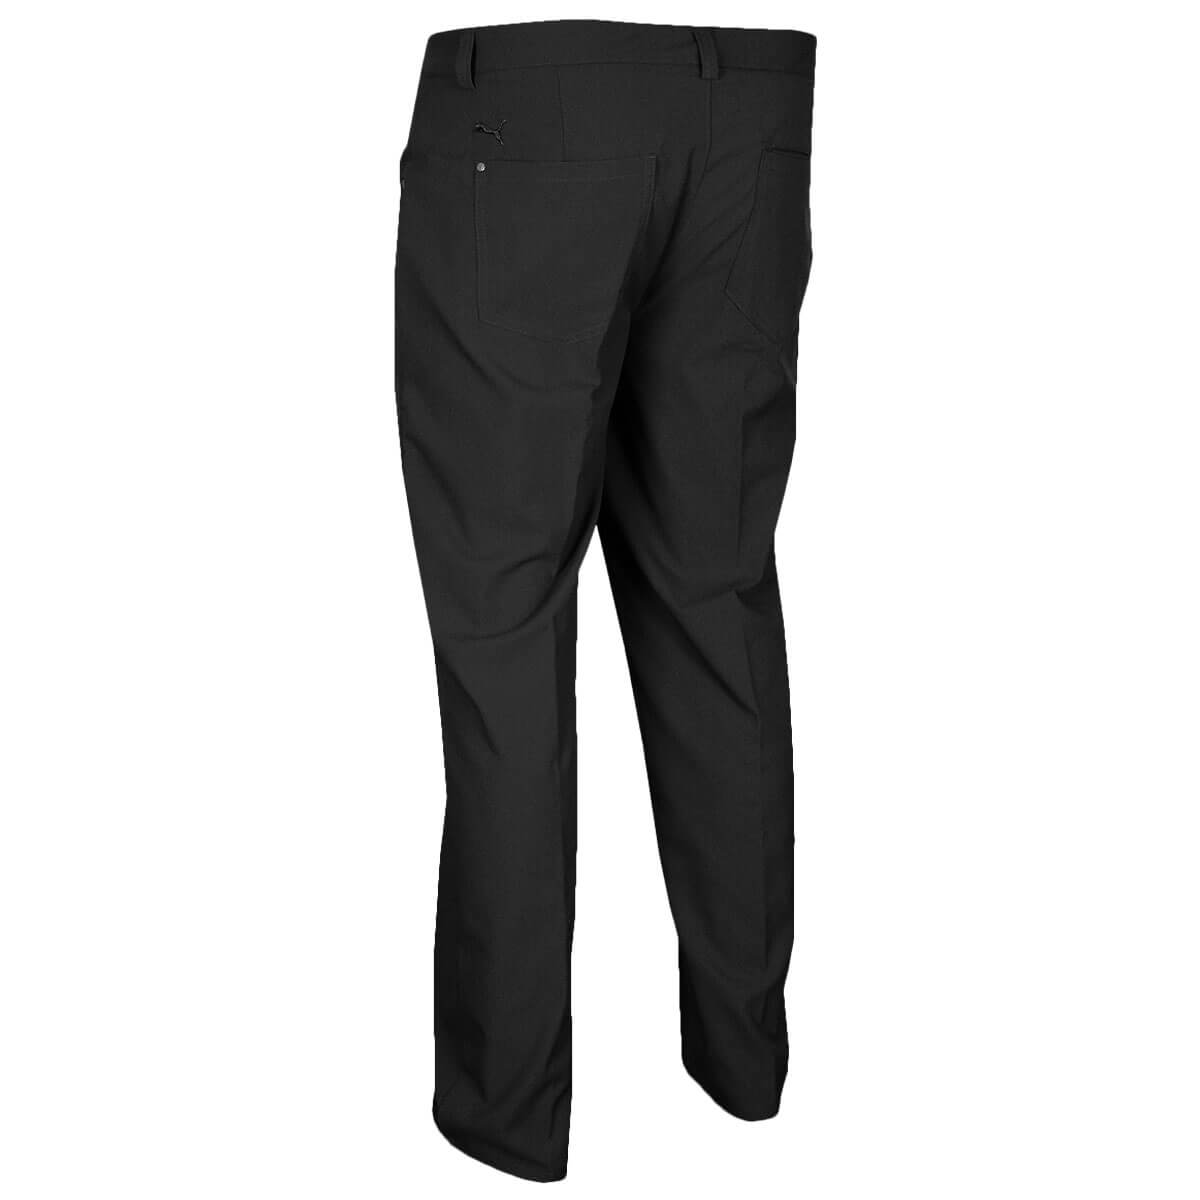 Puma-Golf-Mens-6-Pocket-Pant-DryCELL-Performance-Stretch-Trousers-47-OFF-RRP thumbnail 3